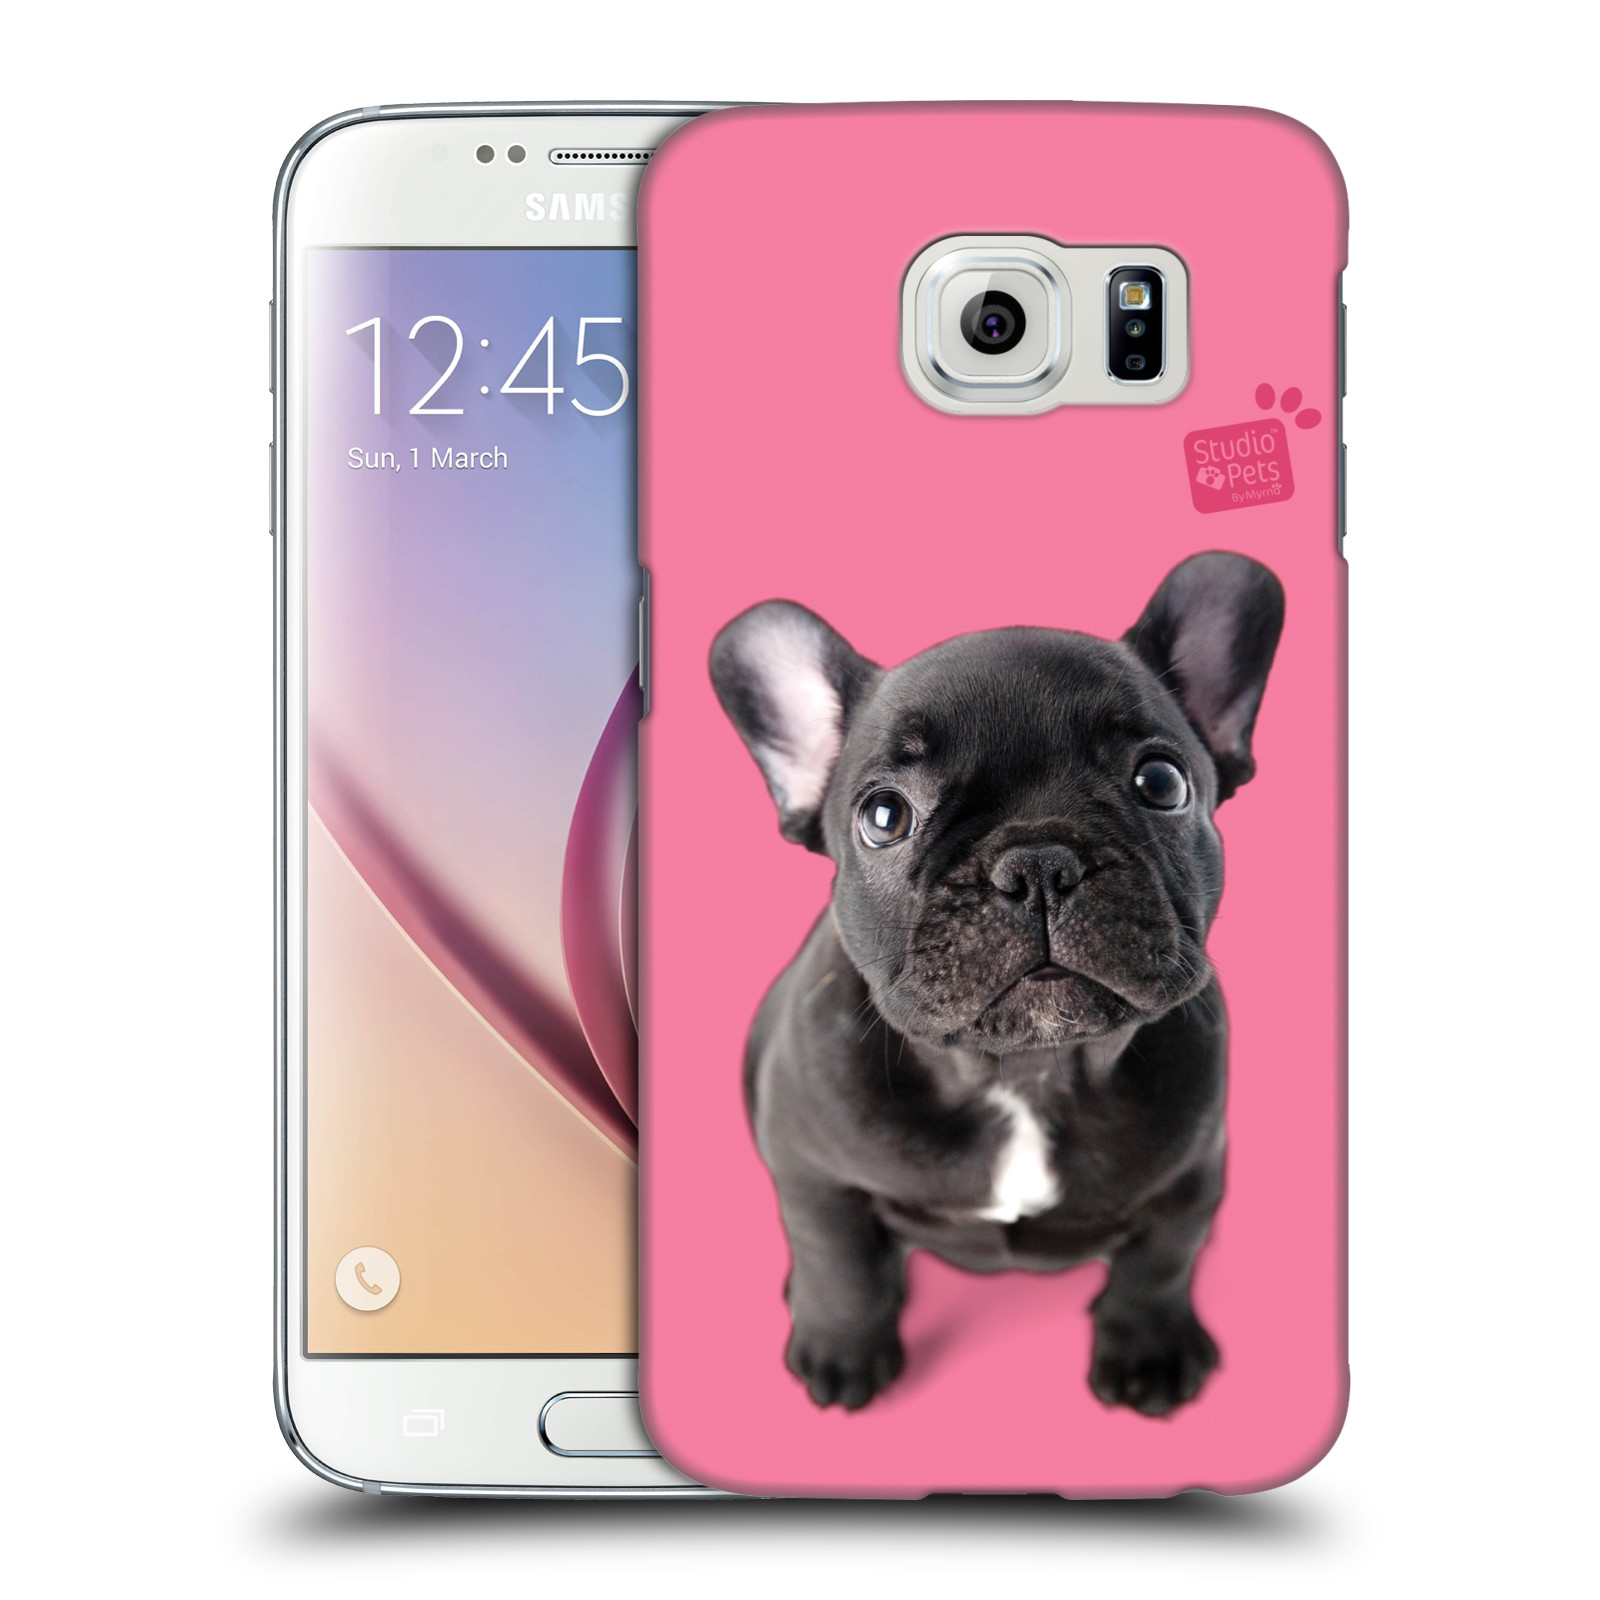 OFFICIAL STUDIO PETS CLASSIC HARD BACK CASE FOR SAMSUNG PHONES 1